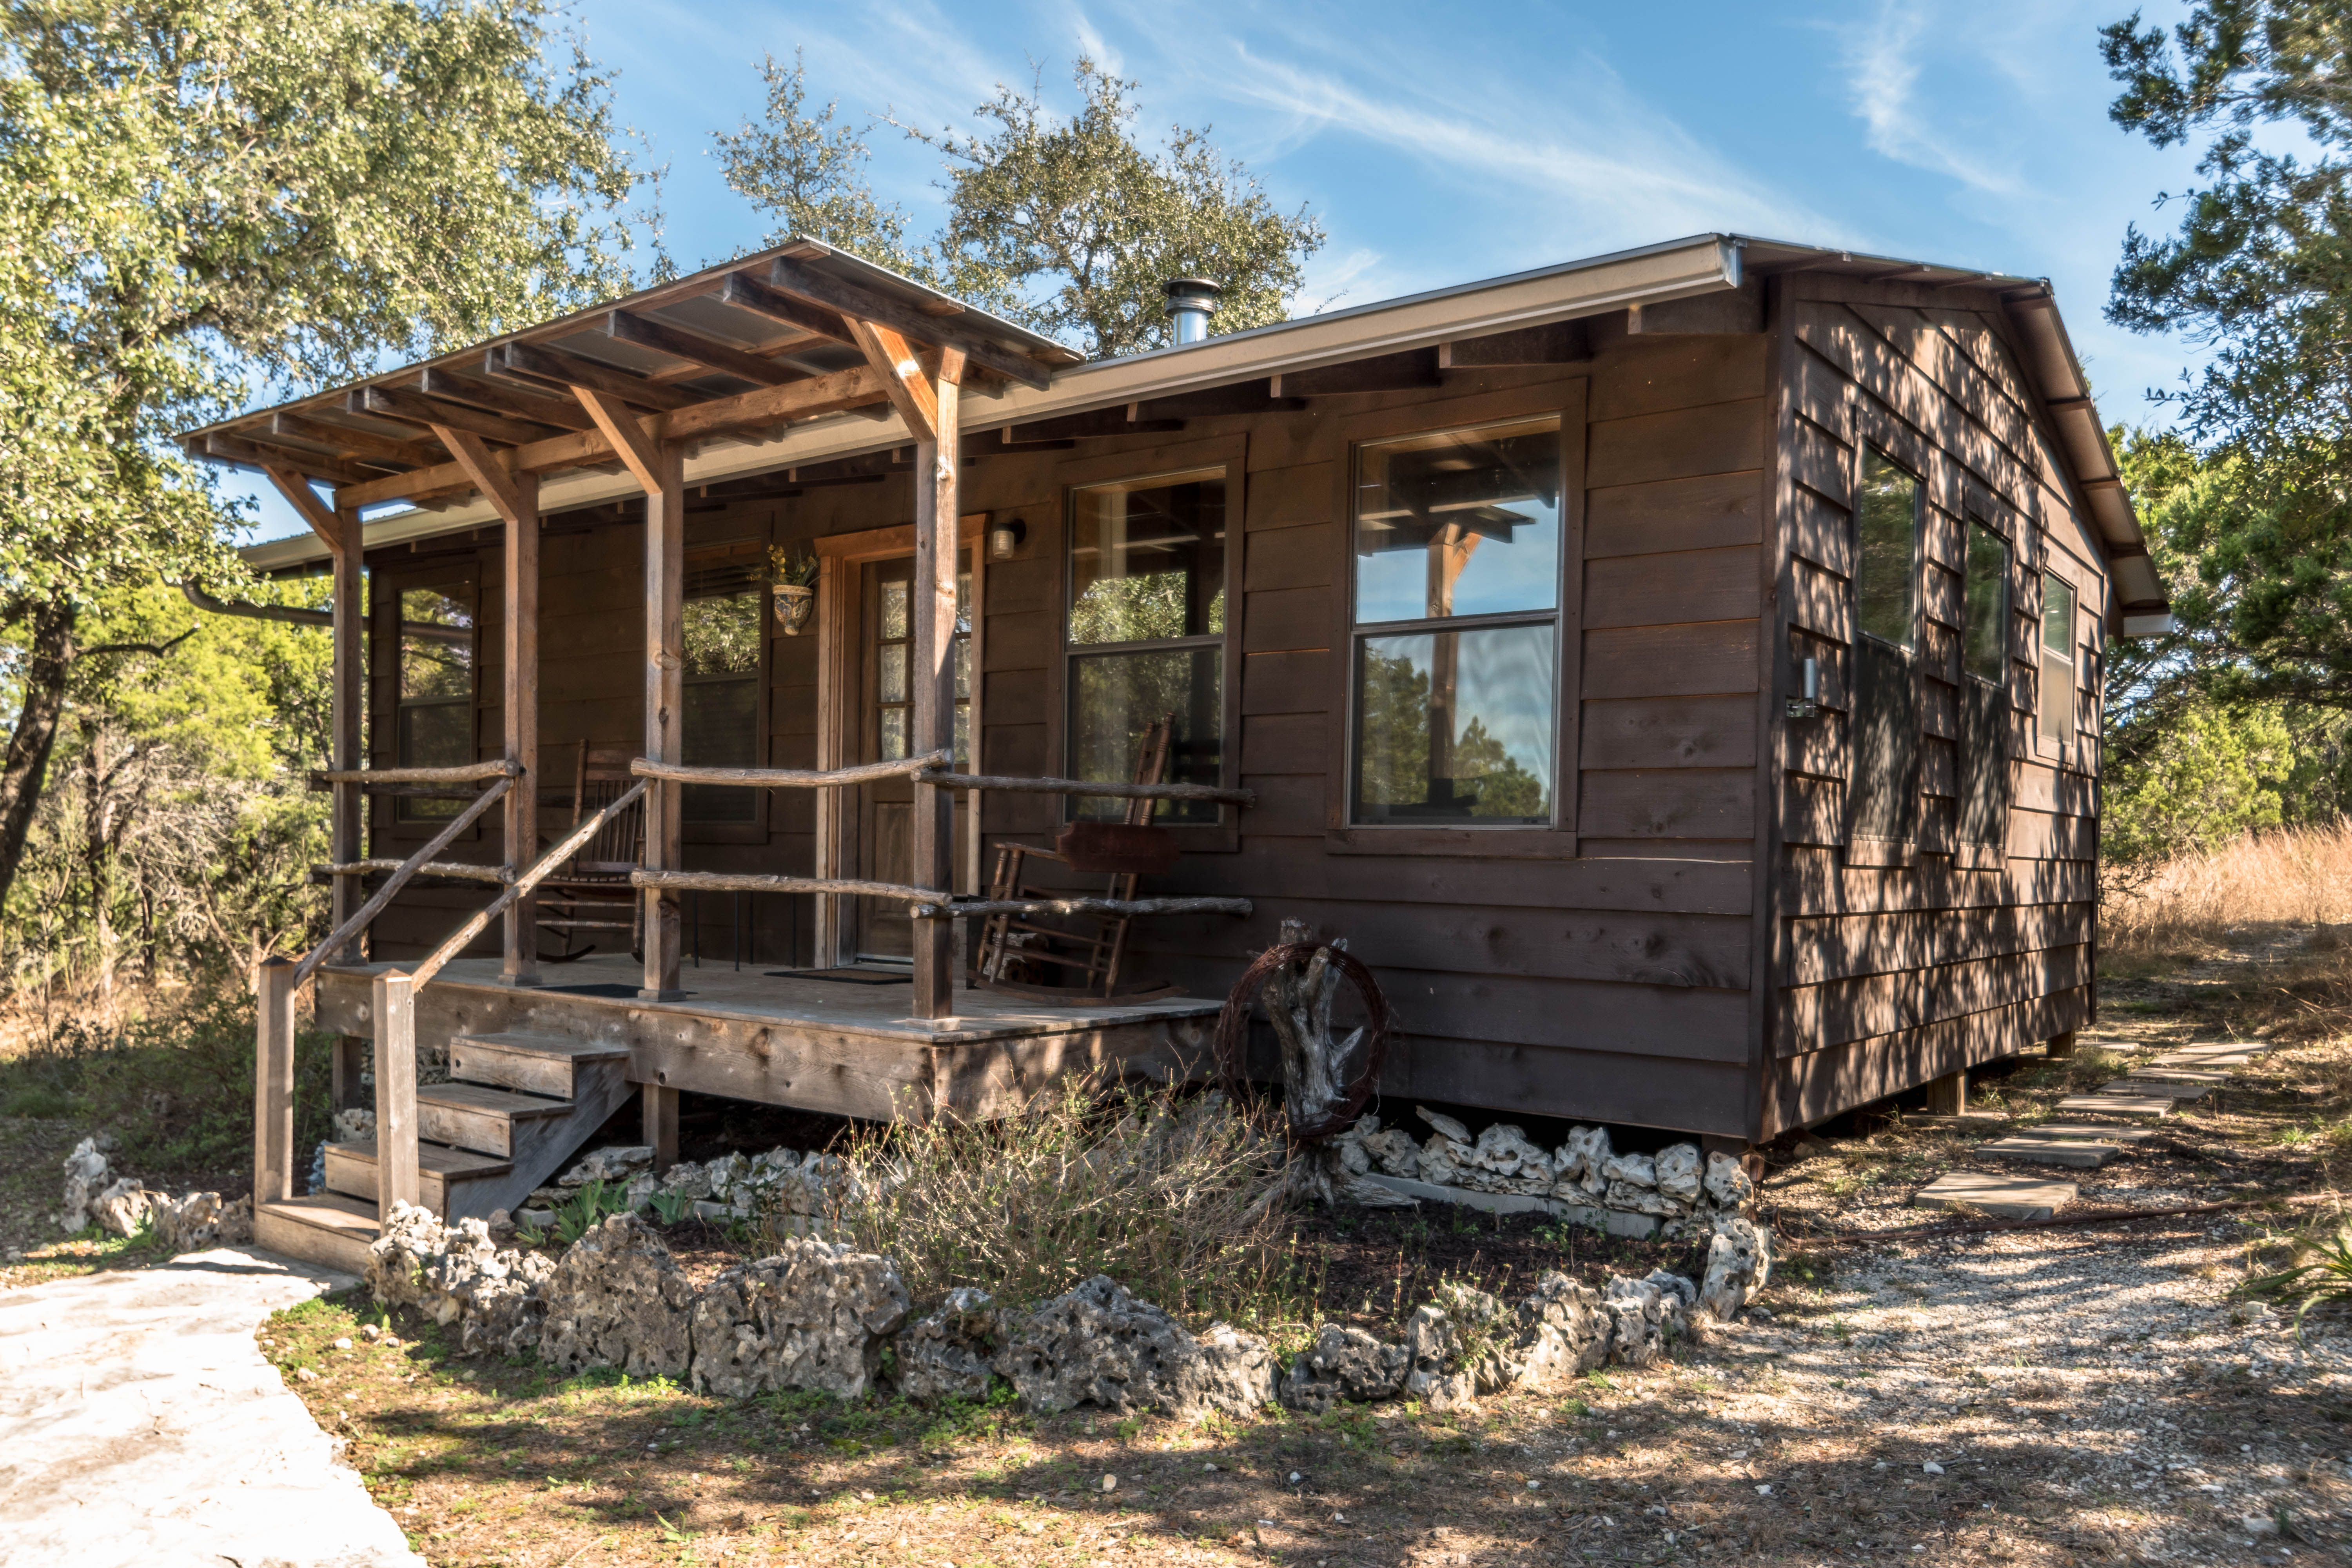 Experience The Stunning Texas Hill Country By Renting This Lovely Cabin Near Wimberley Texas Cabins In Texas Pet Friendly Cabins Secluded Cabin